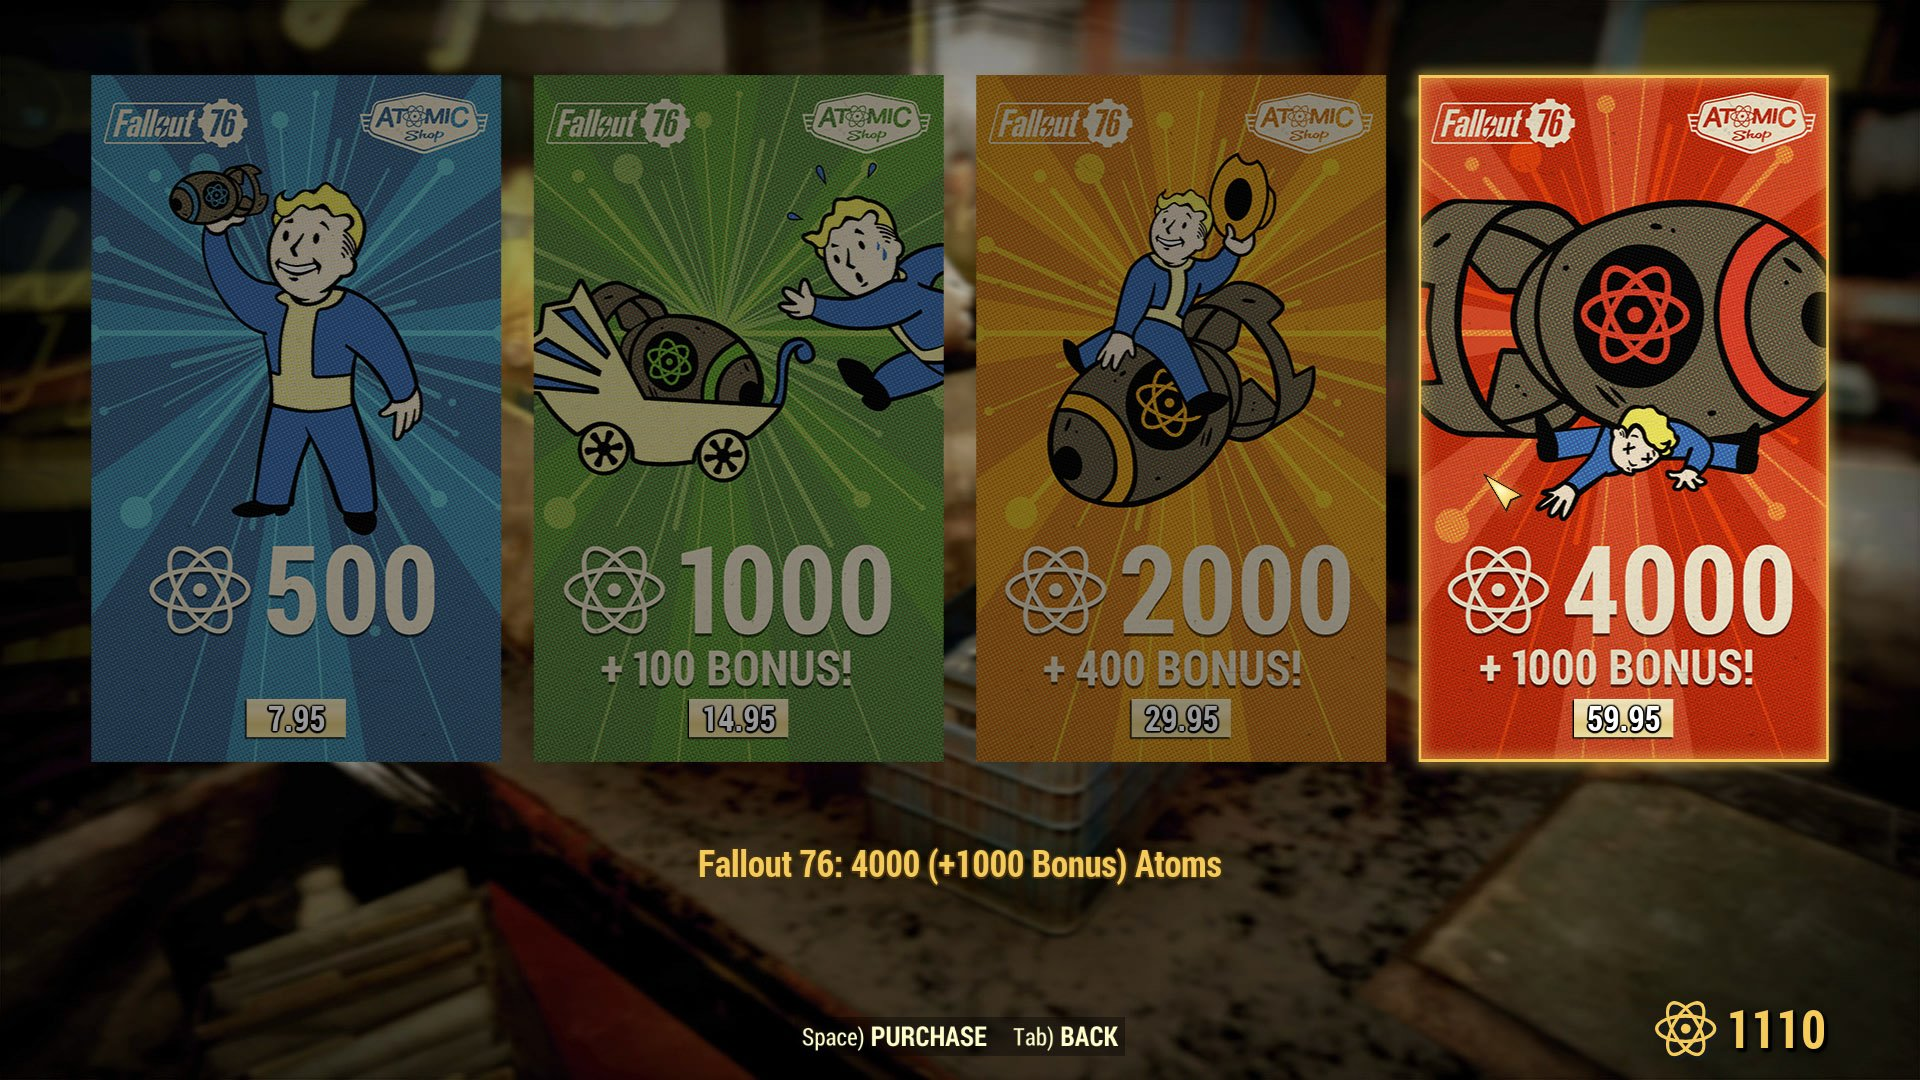 Atoms, Challenges, and Atomic Shop guide - Fallout 76 | Shacknews